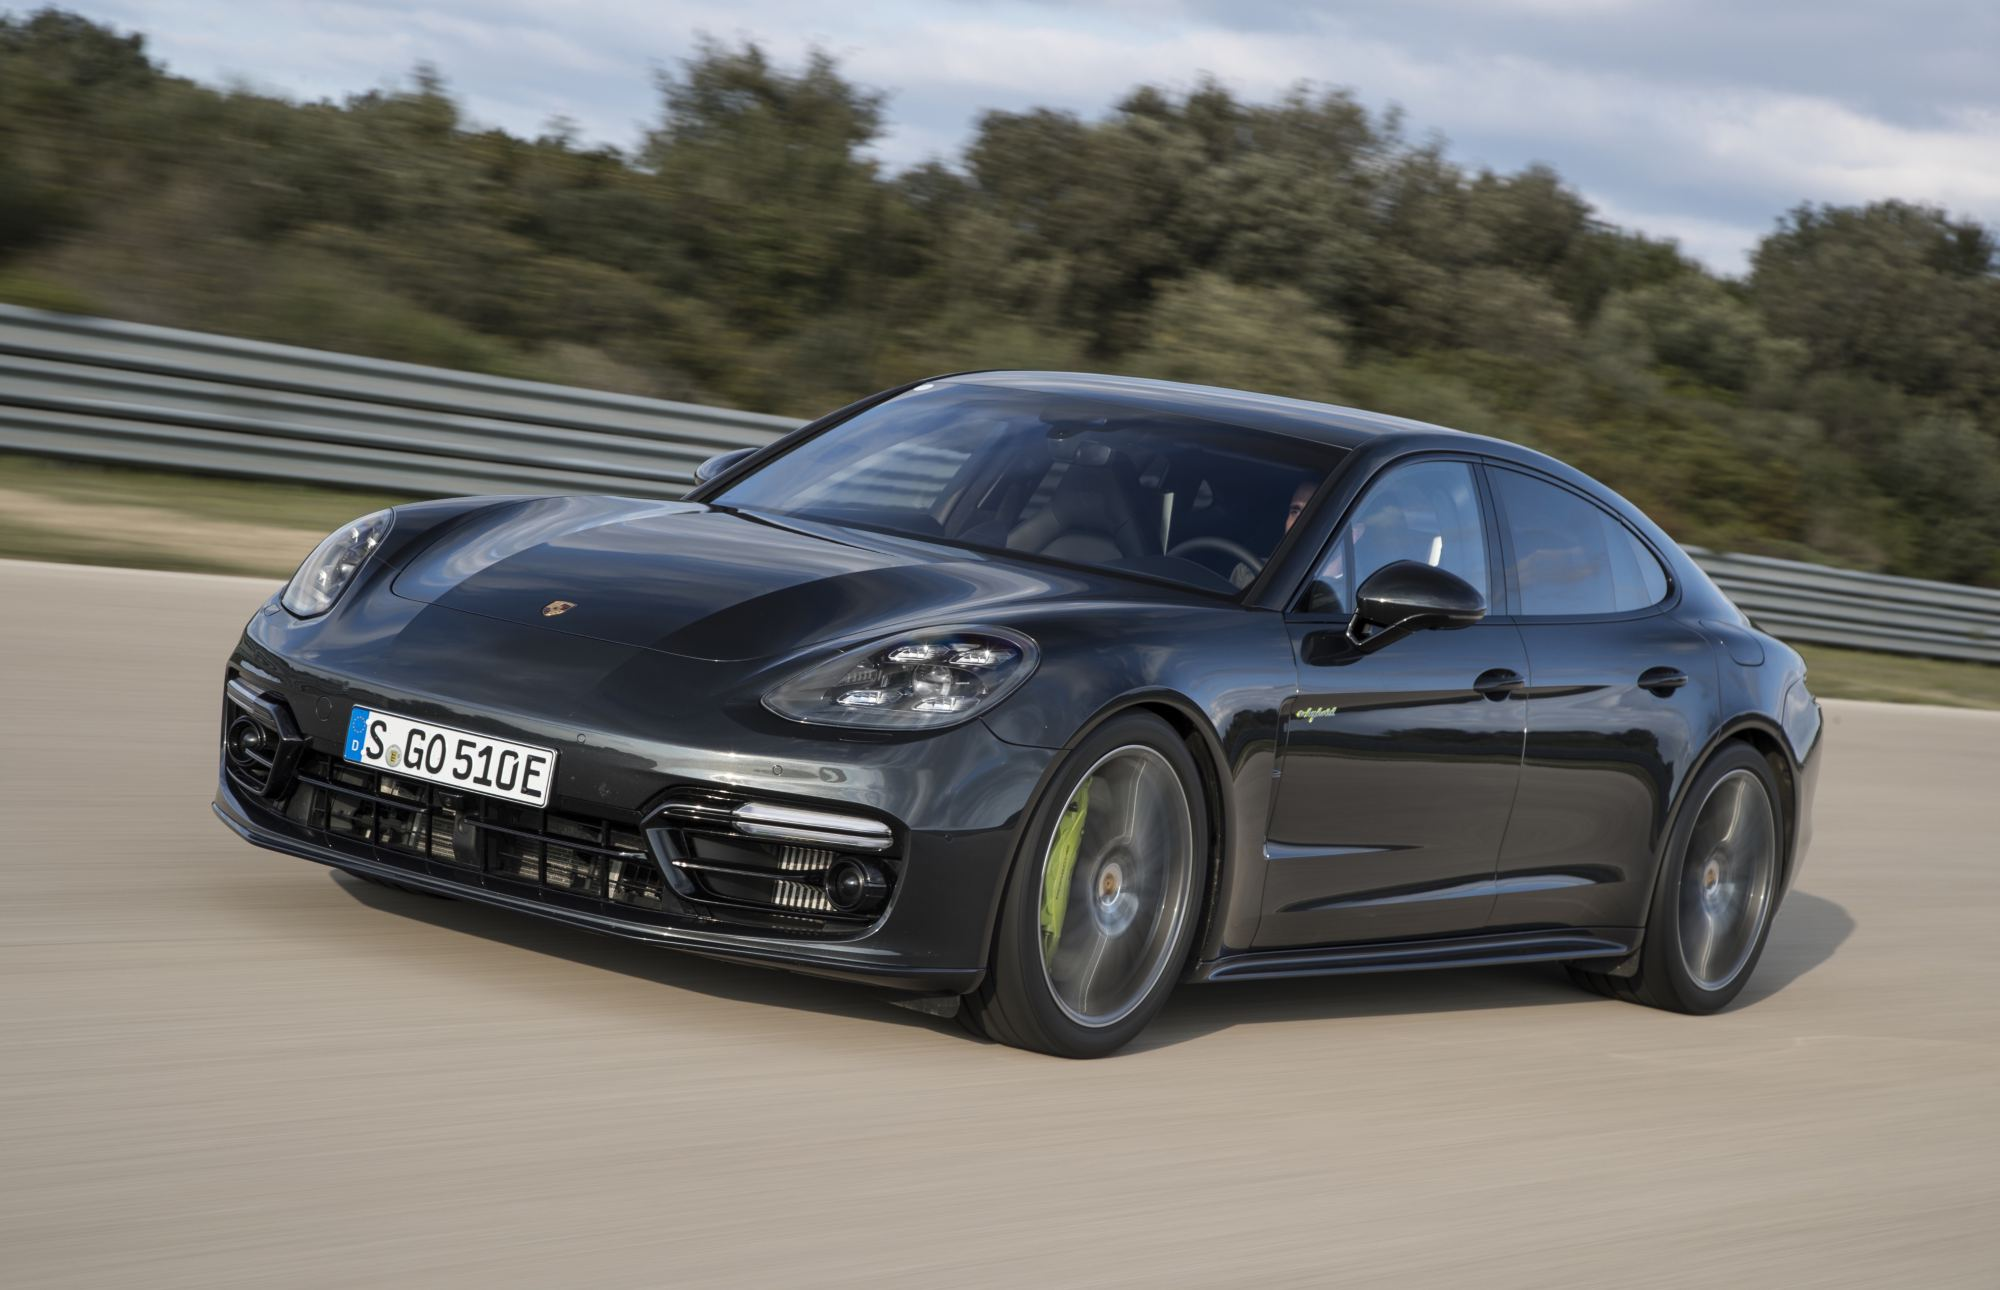 News Panamera Turbo S E Hybrid Is New Porsche Saloon King